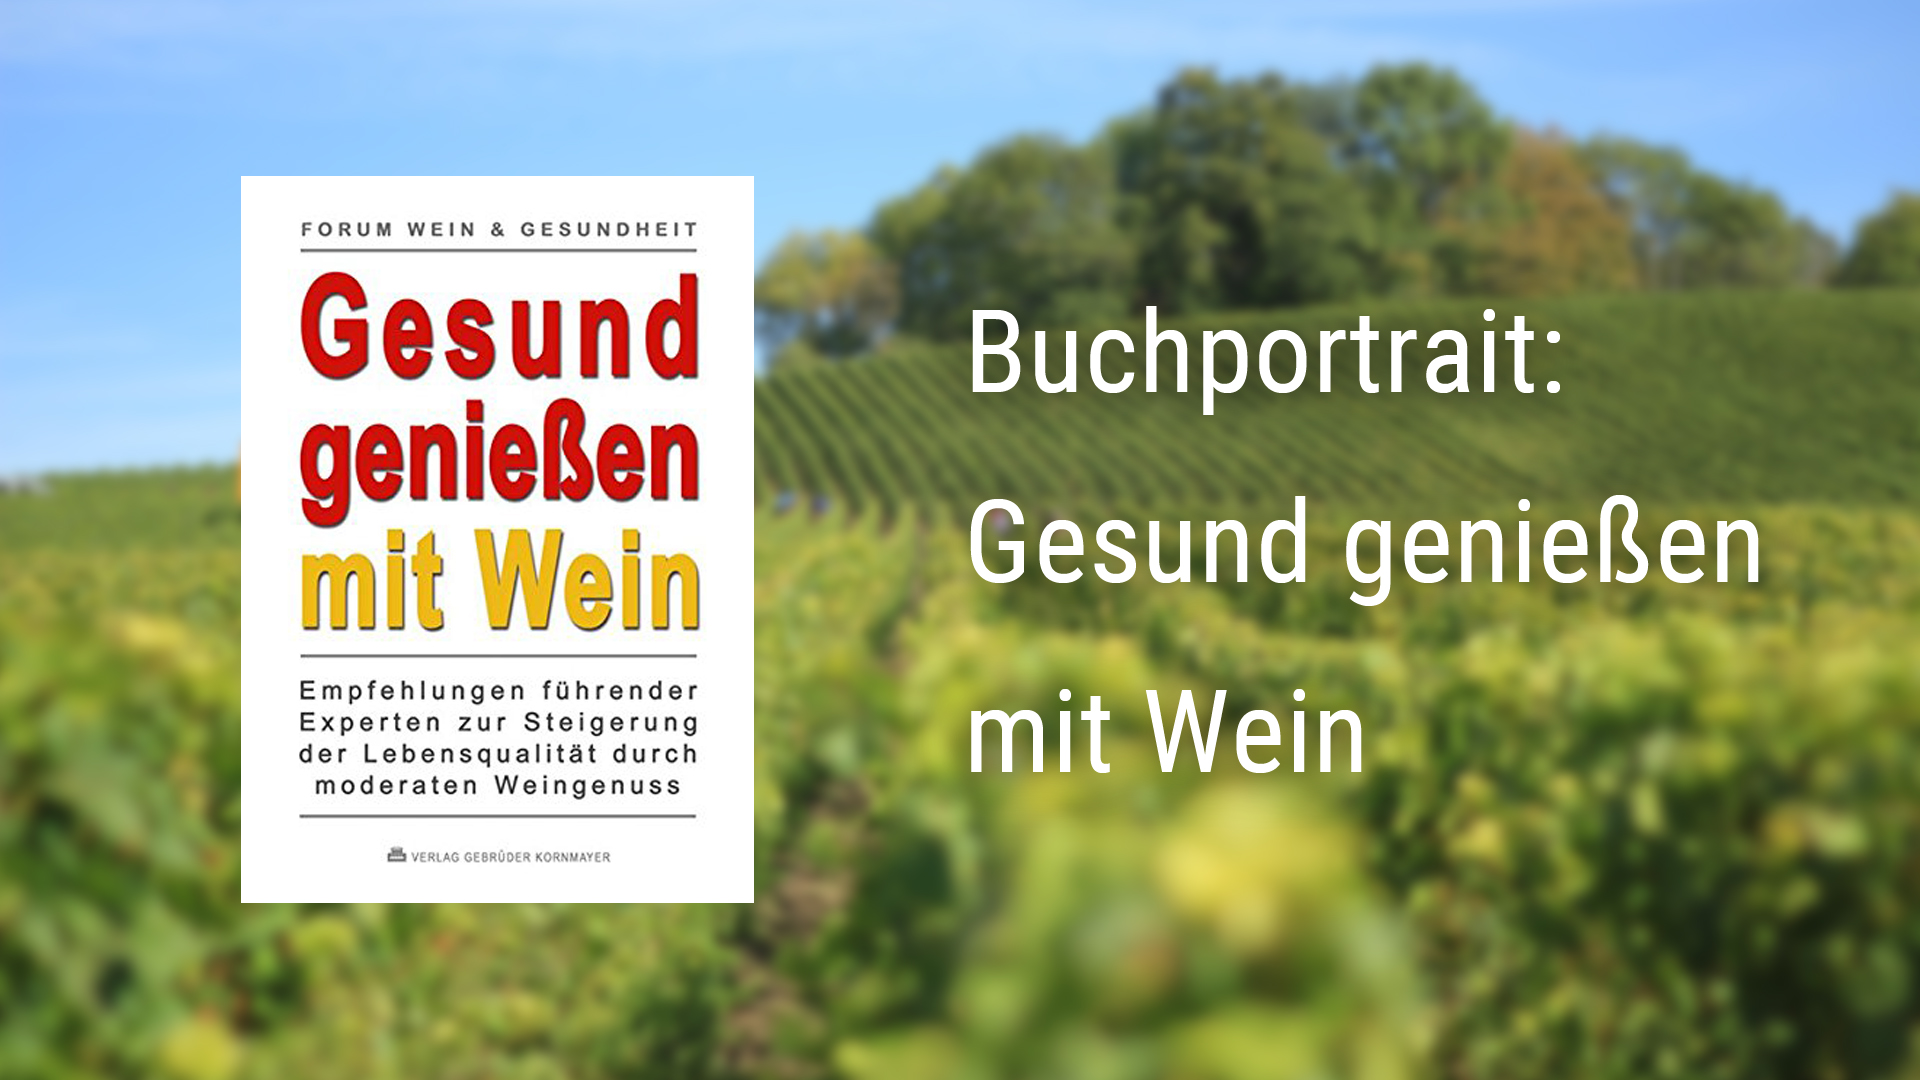 Book portrait: Enjoying healthy with wine – an interview with Doris Goedecker